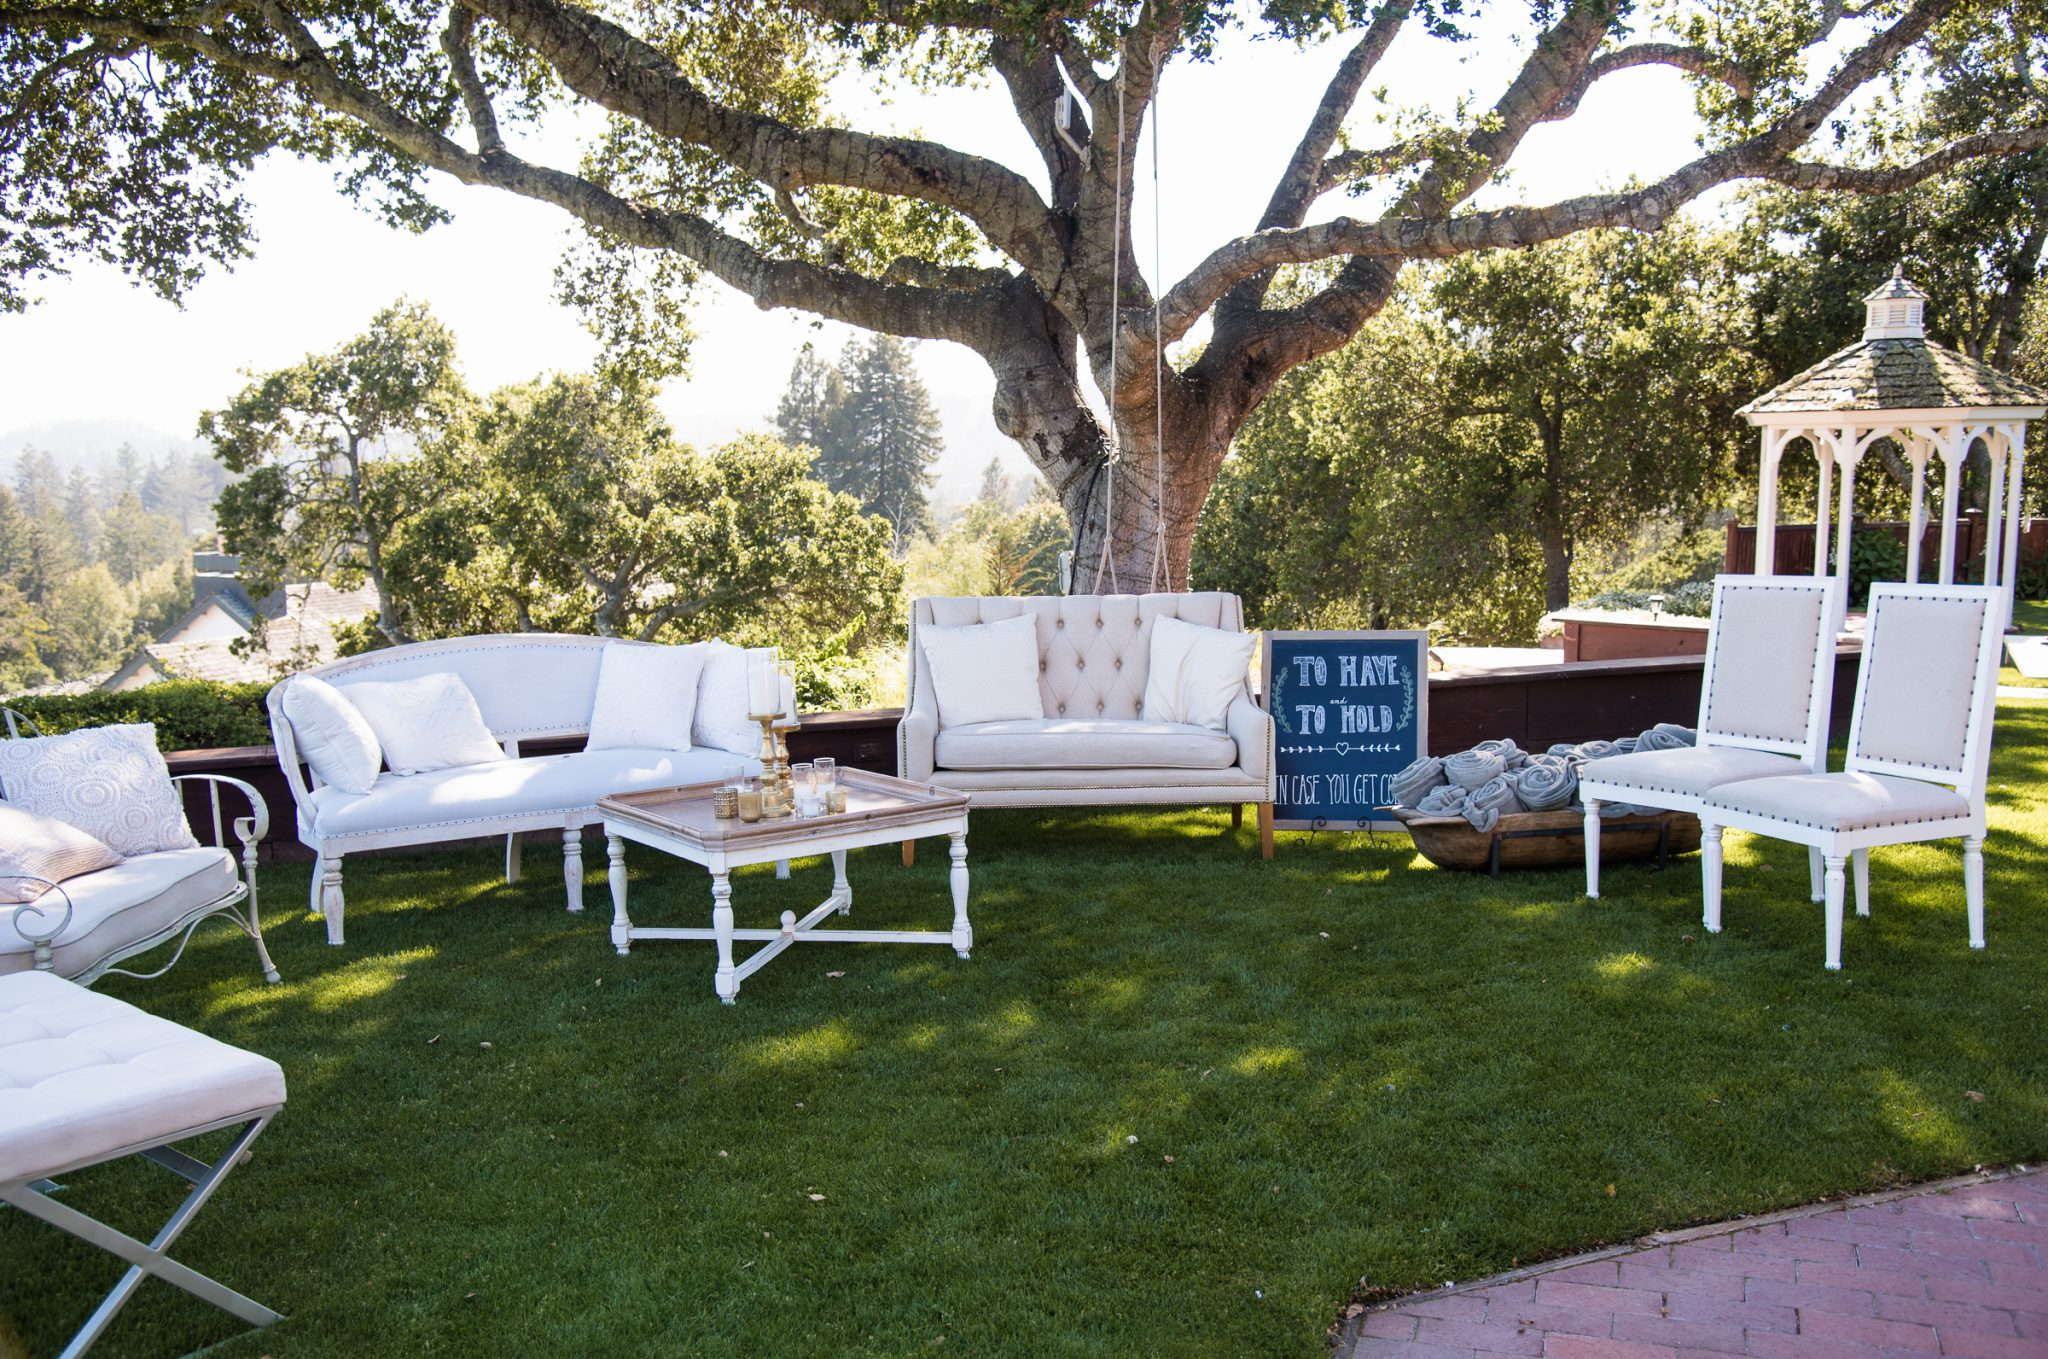 Wedding furniture under hollins house oak tree by Expressive Photographics